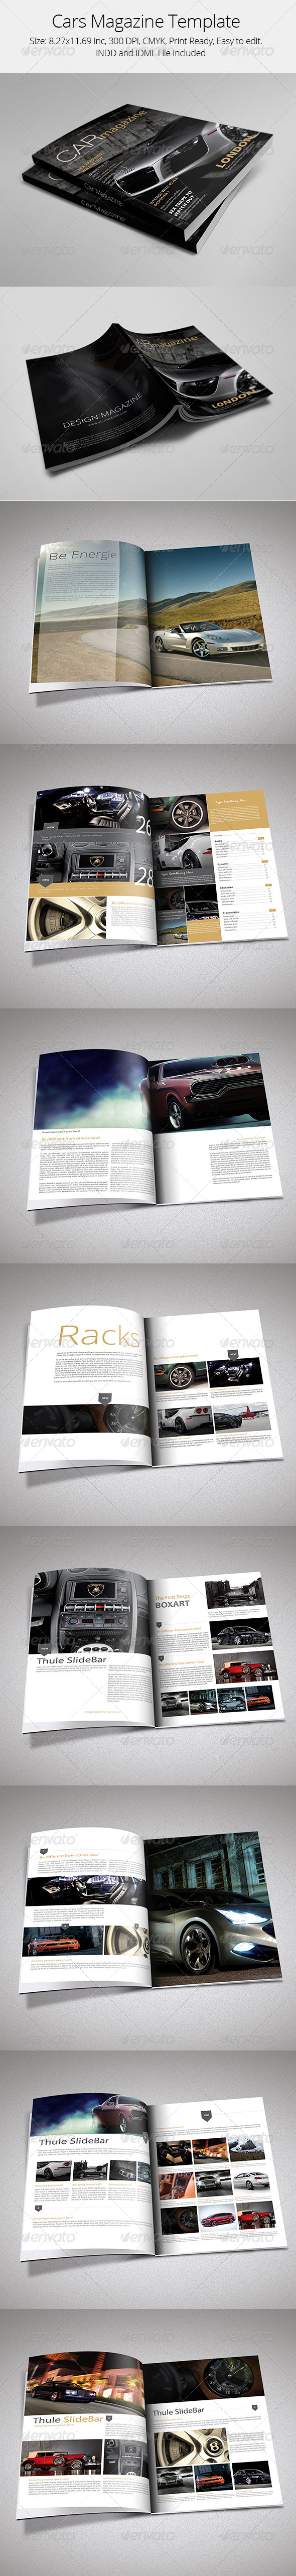 GraphicRiver Cars Magazine Template 6103404